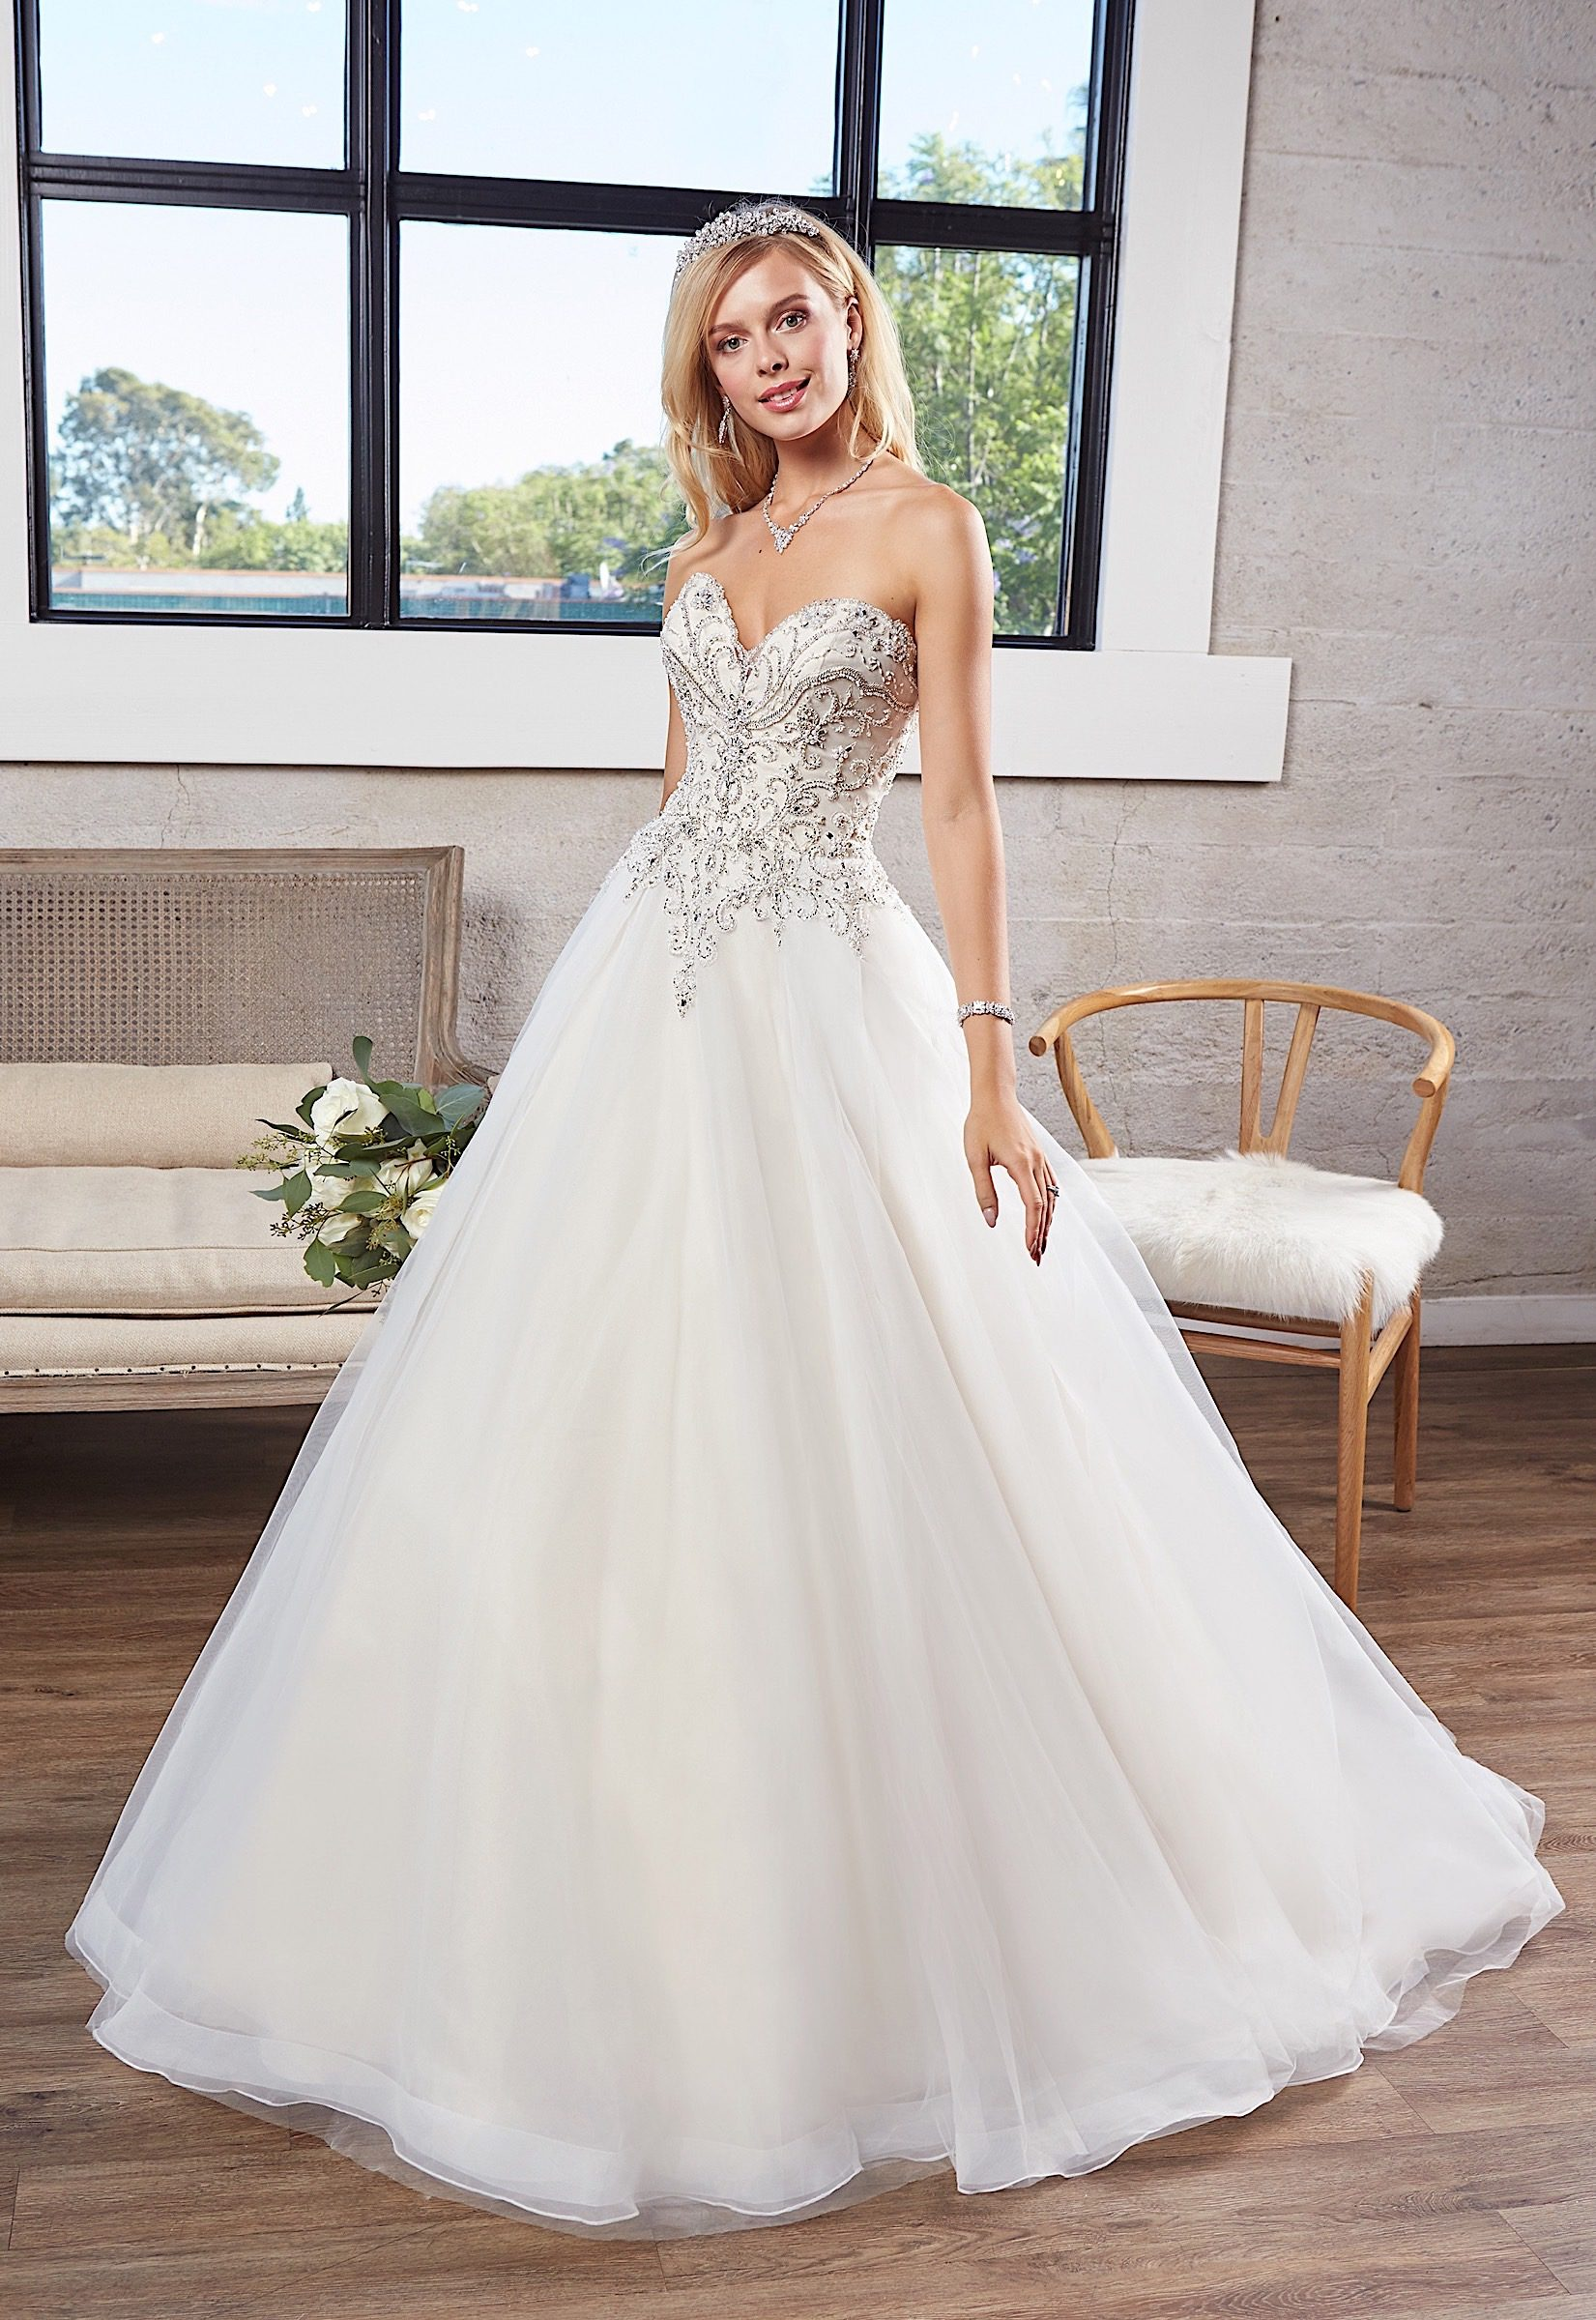 Wedding gowns gold coast bridal dresses and gowns in brisbane add to wishlist loading junglespirit Image collections